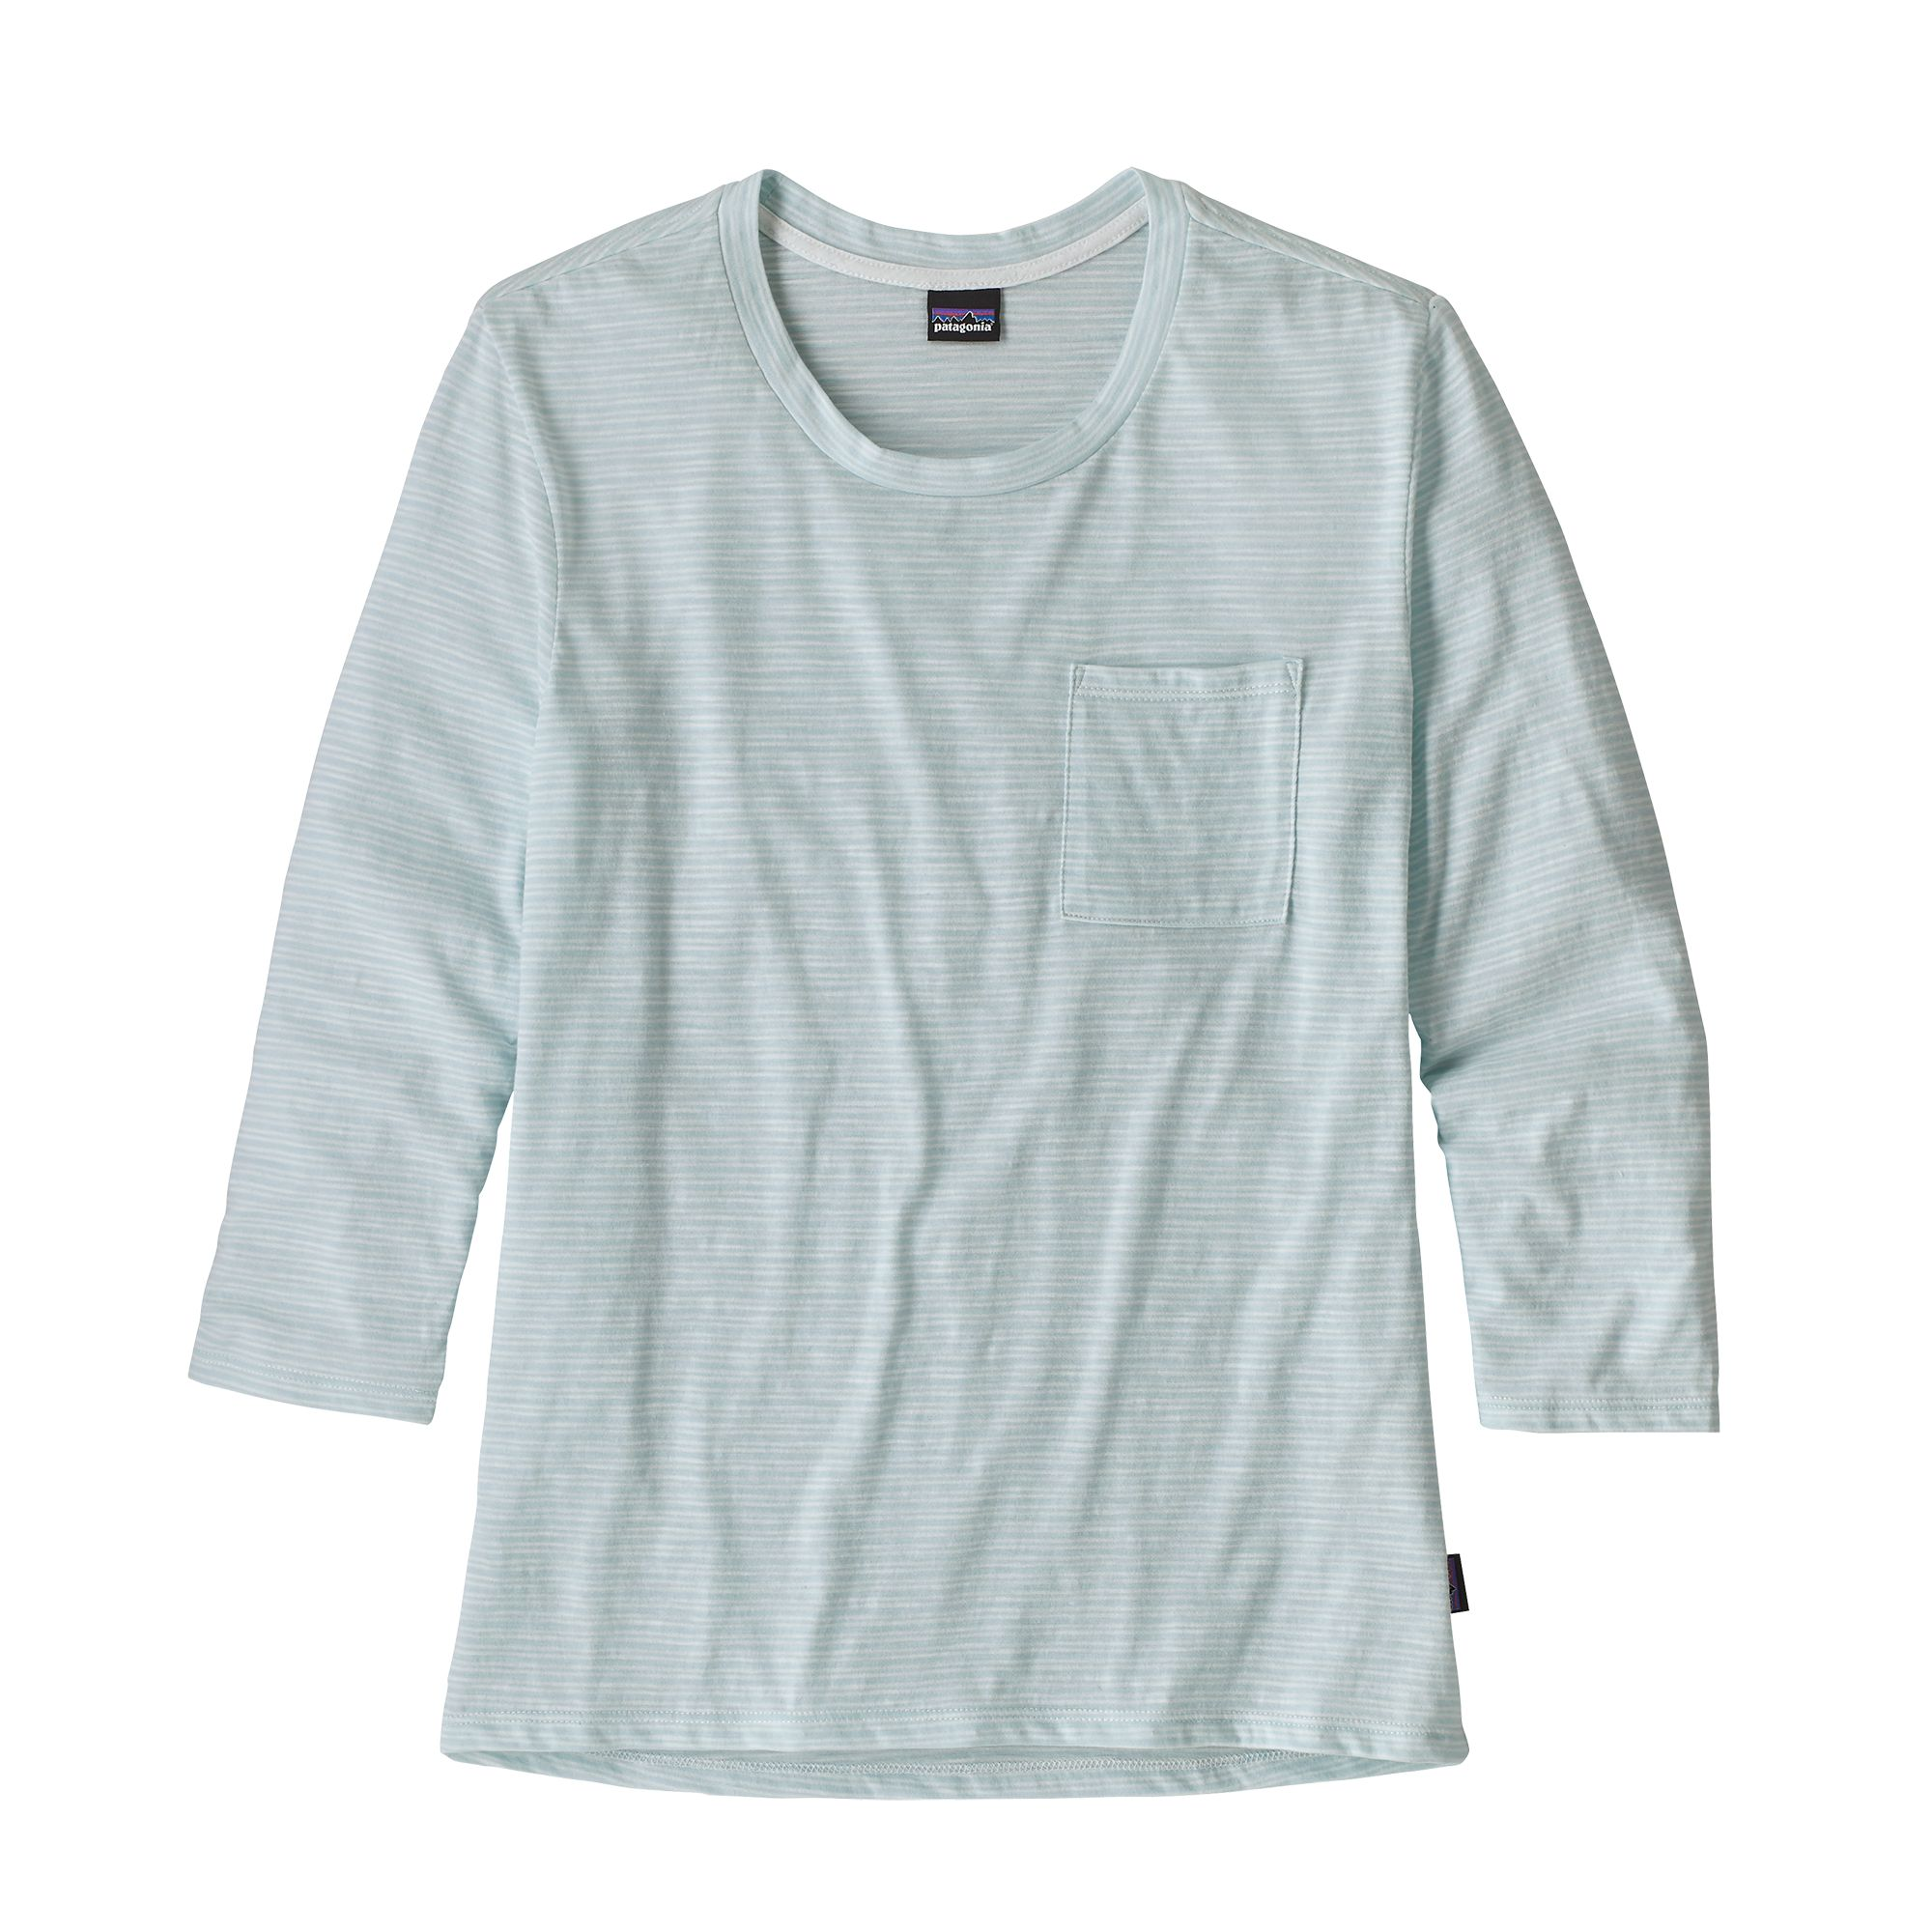 Patagonia W's Mainstay 3/4 Sleeve Top